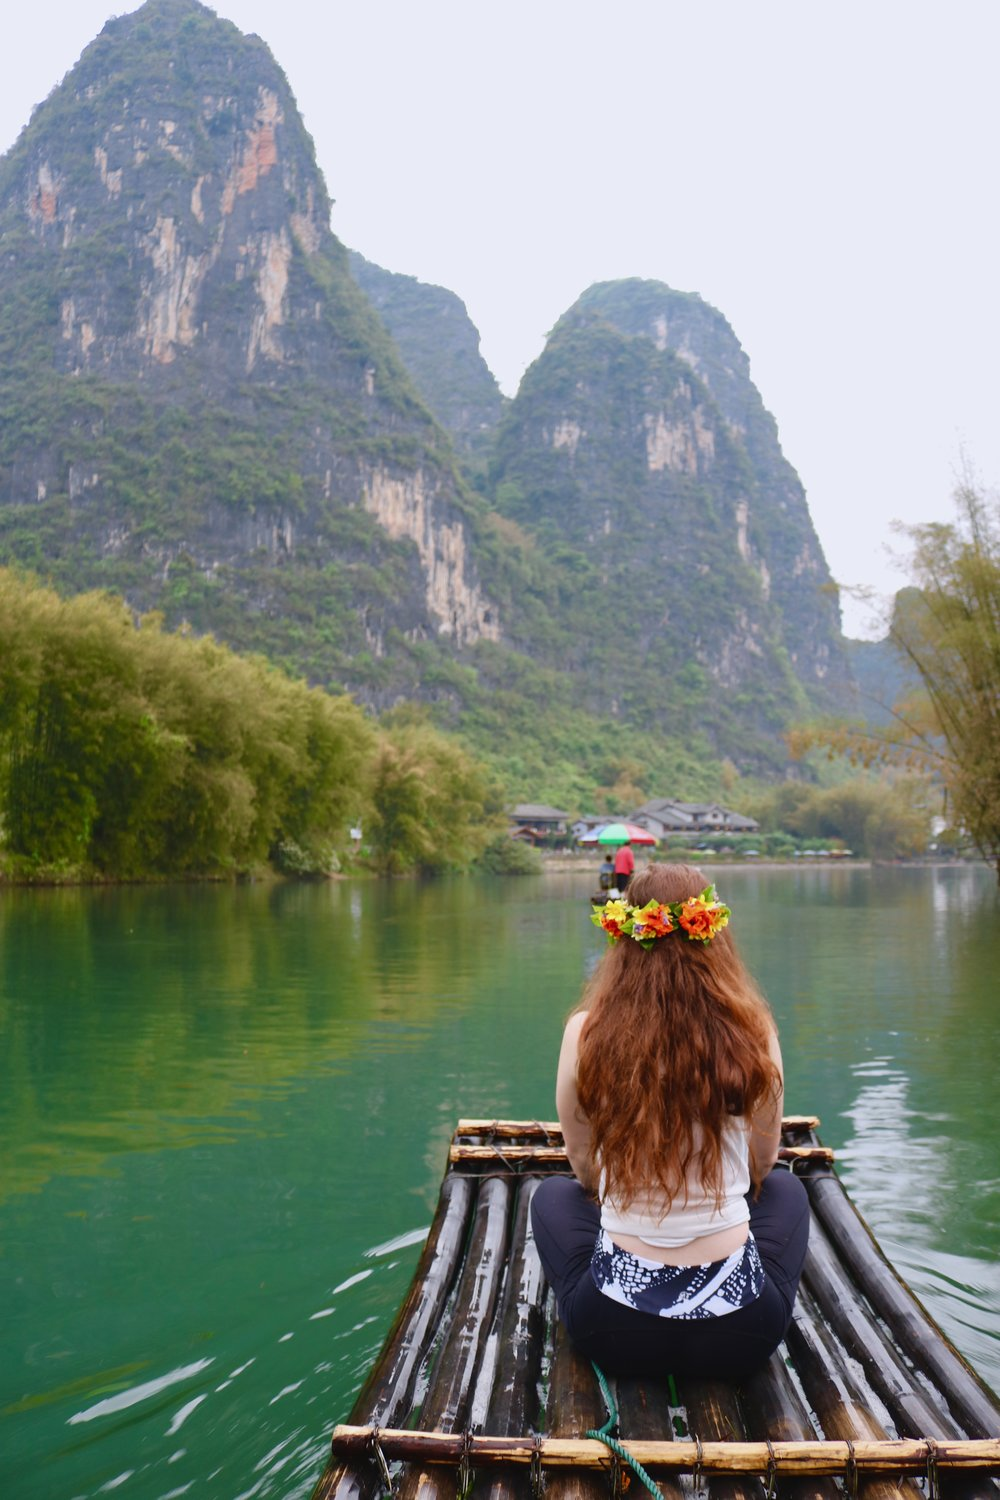 Guilin - As one of China's top 5 most visited cities, it is known for its beautiful landscapes filled with mountains, rivers, caves and rice terraces.